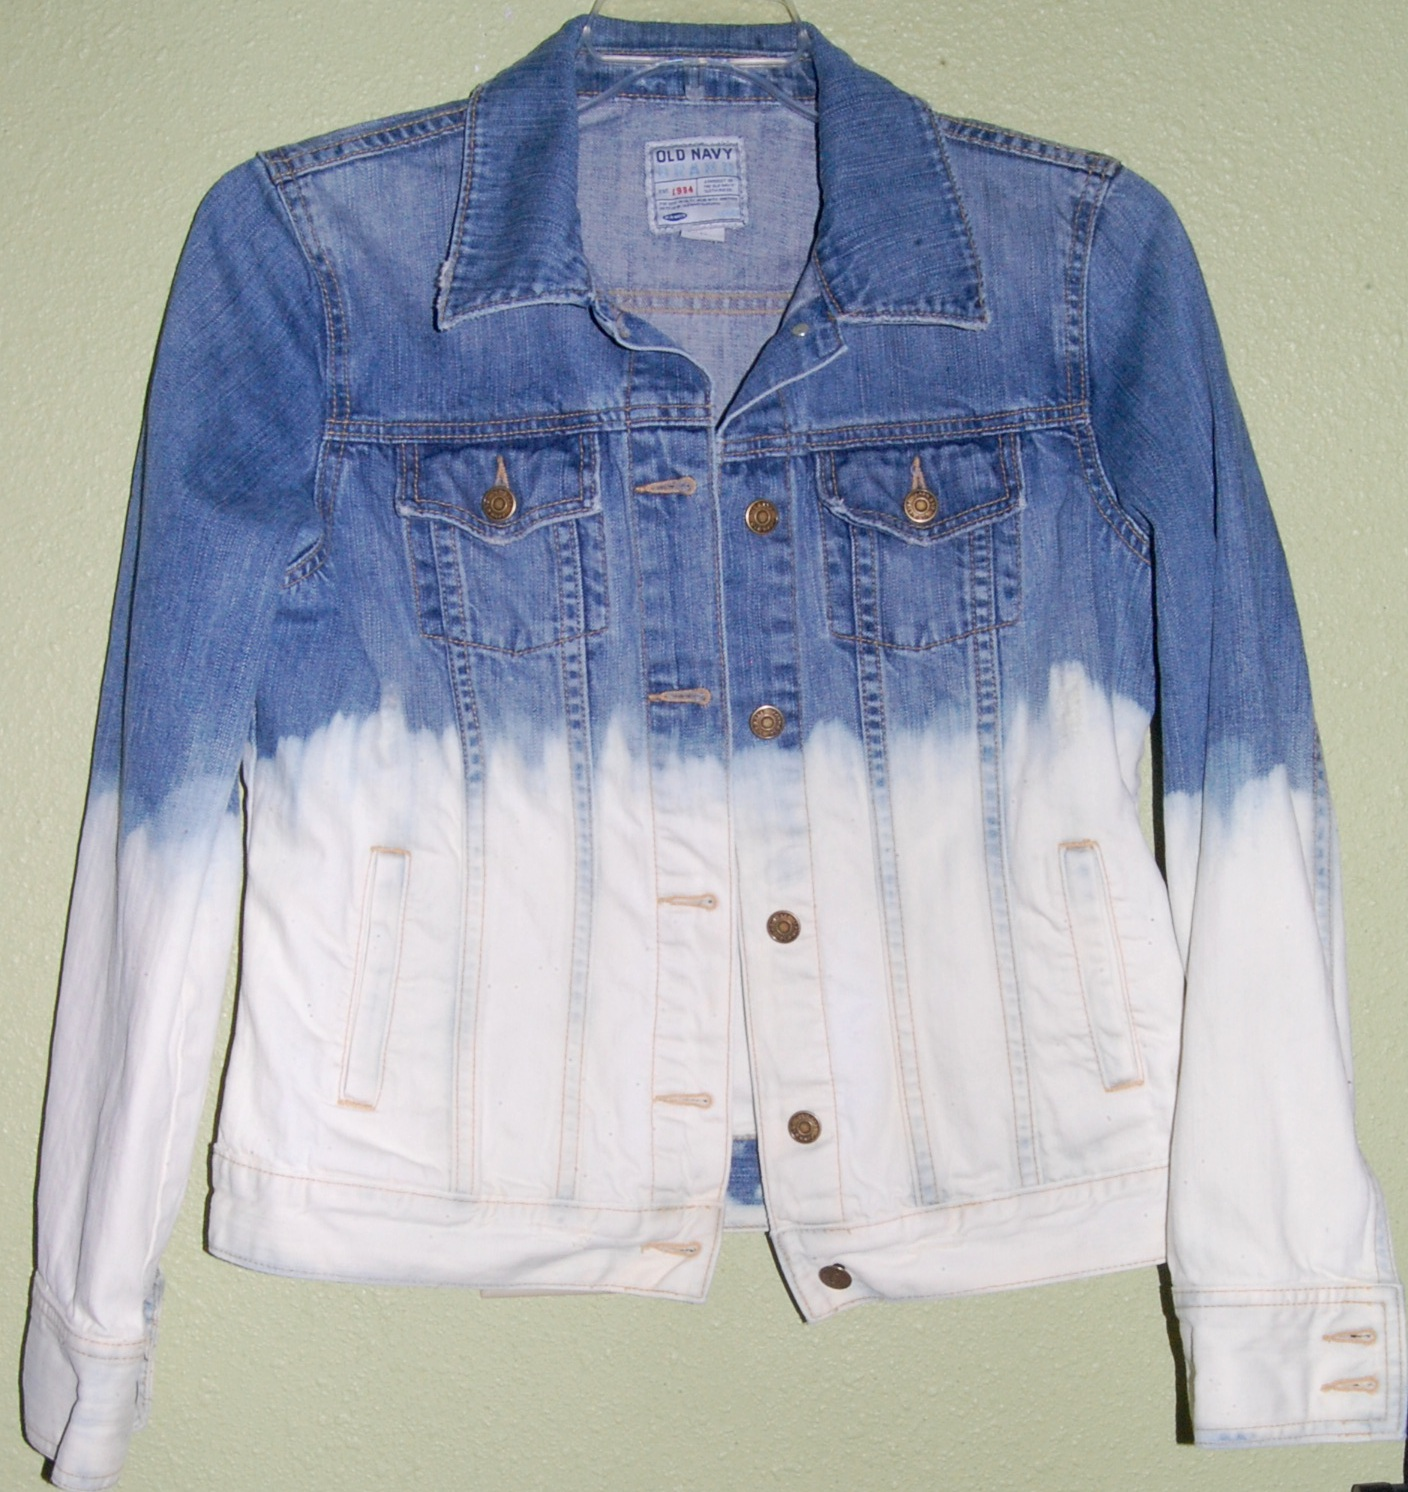 The sun bleached denim jacket features chest pockets and front welt pockets. Urban Classics Ladies Denim Jacket, TB Long Sleeve Trucker Jacket for Women. by Urban Classics. $ - $ $ 21 $ 52 Prime. FREE Shipping on eligible orders. Some sizes/colors are Prime eligible.